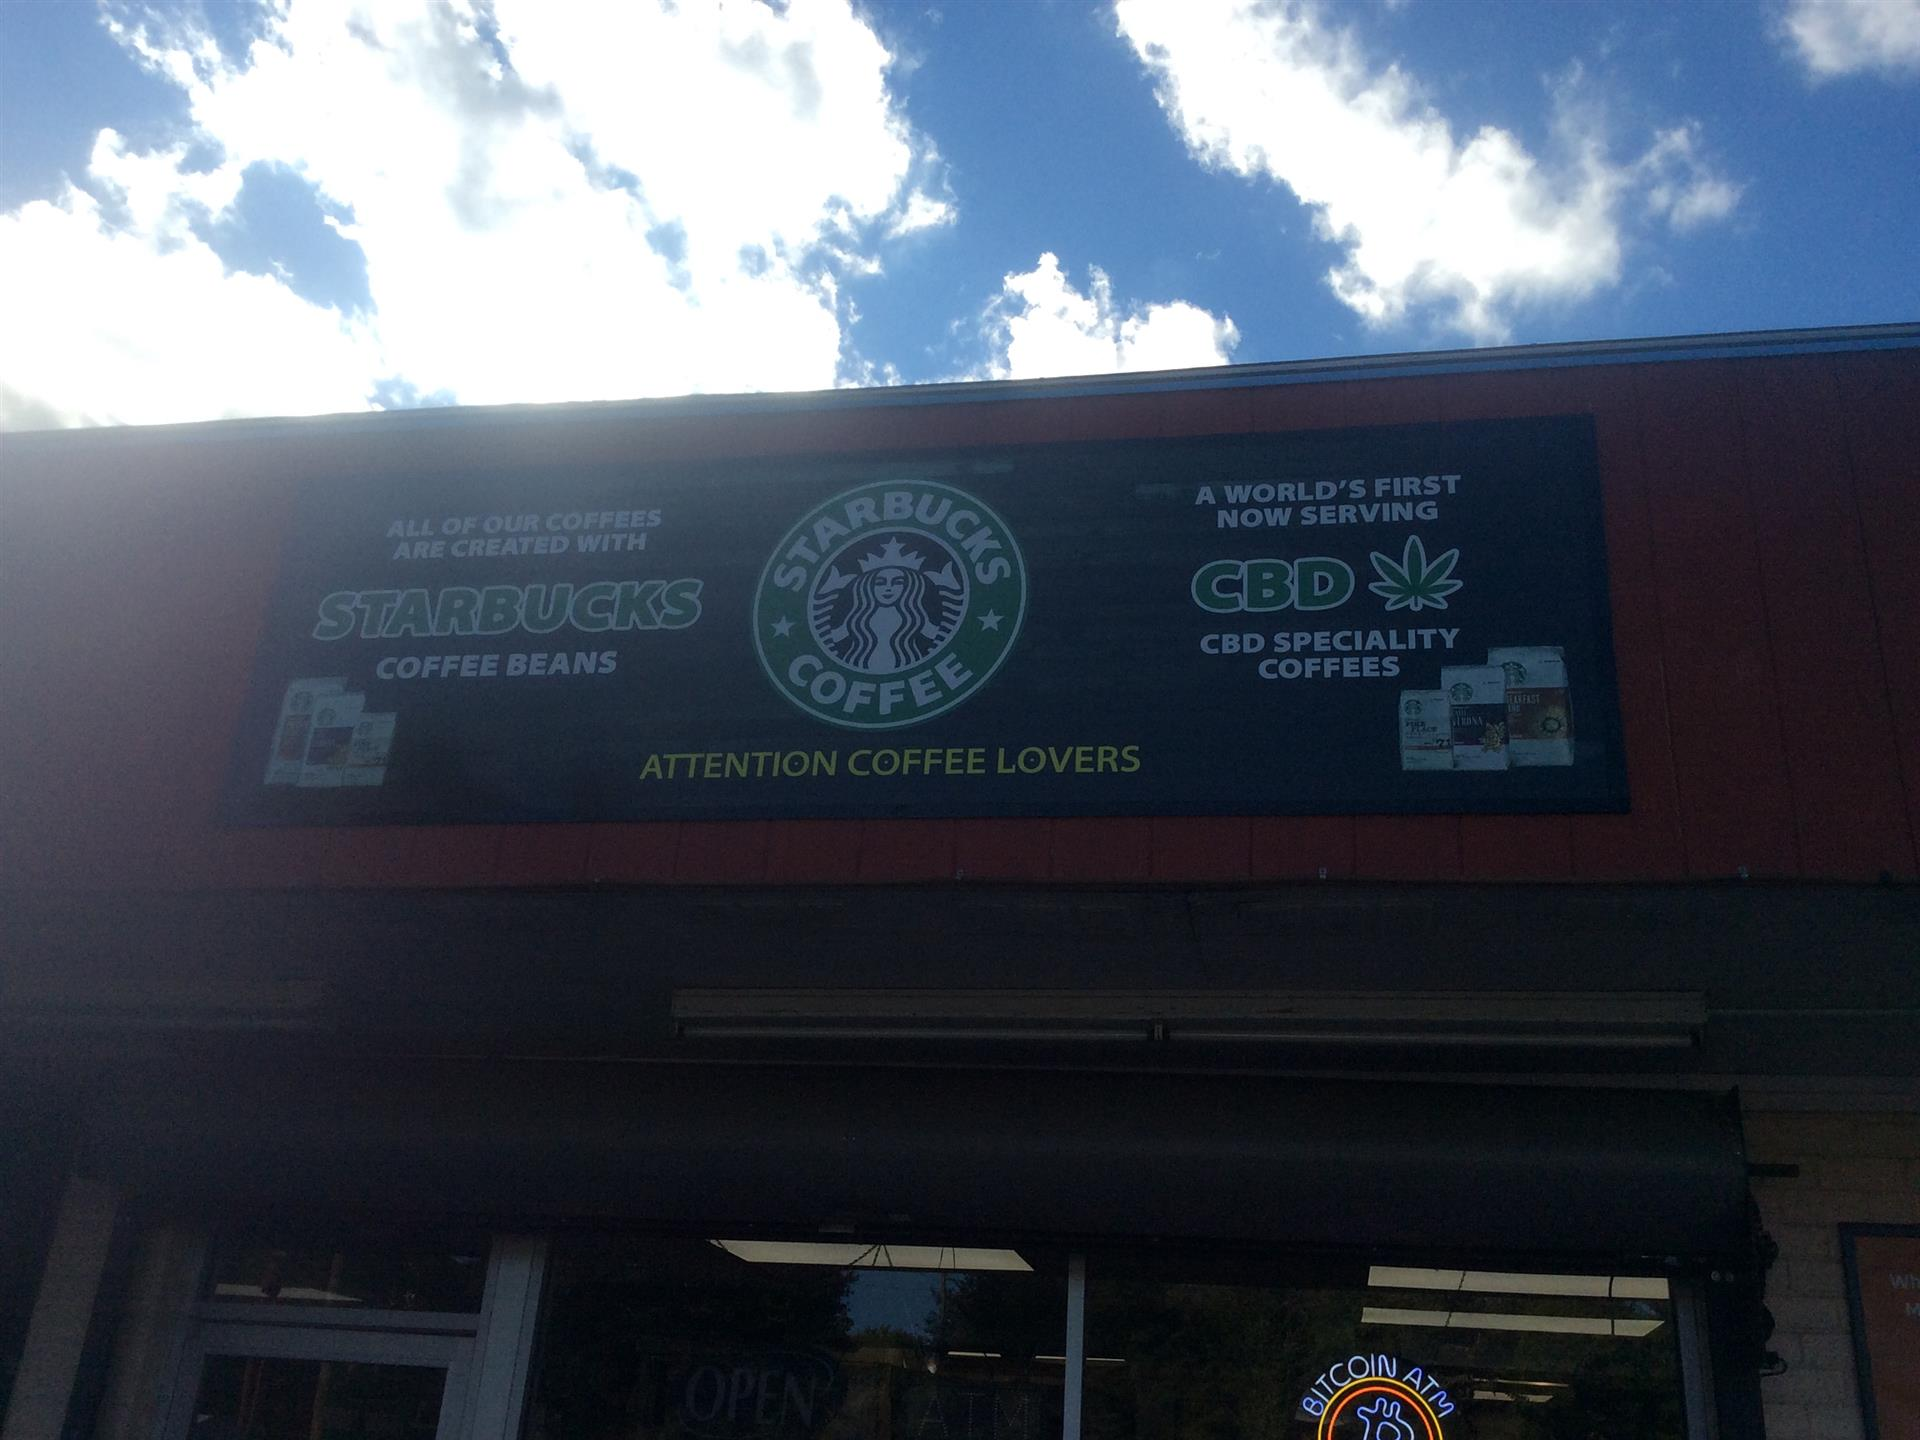 starbucks banner hung outside of store, all our coffee is created with starbucks coffee beans, now serving CBD